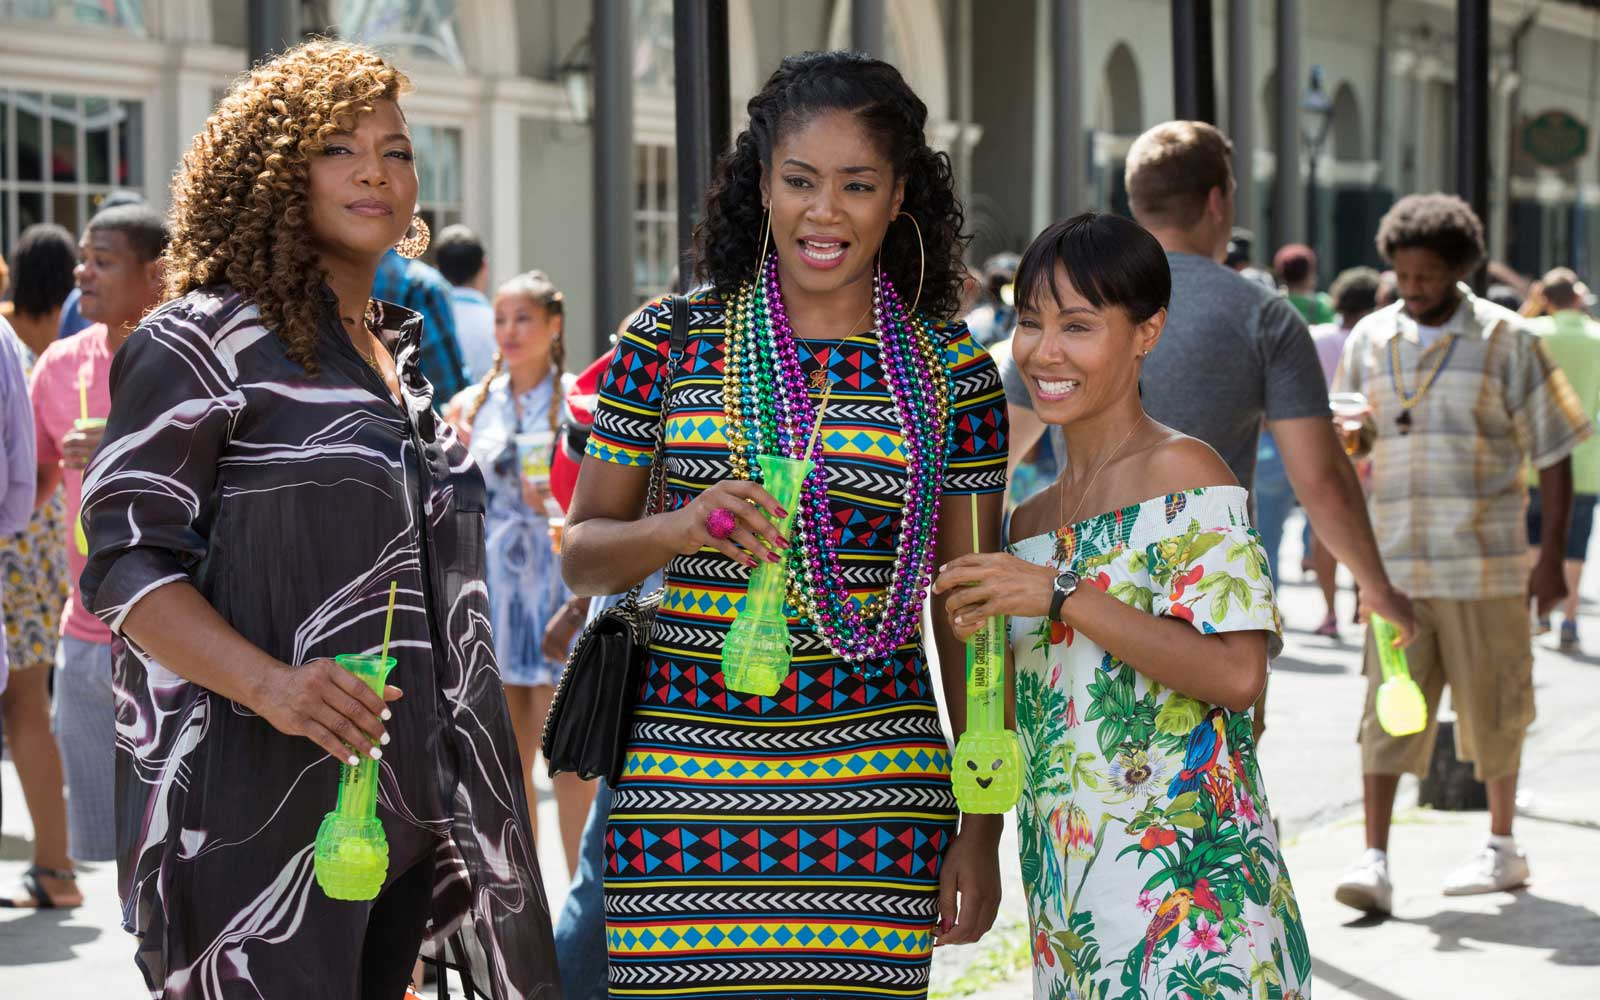 Girls Trip (2017) Directed by Malcolm D. LeeShown from left: Queen Latifah, Tiffany Haddish, Jada Pinkett Smith